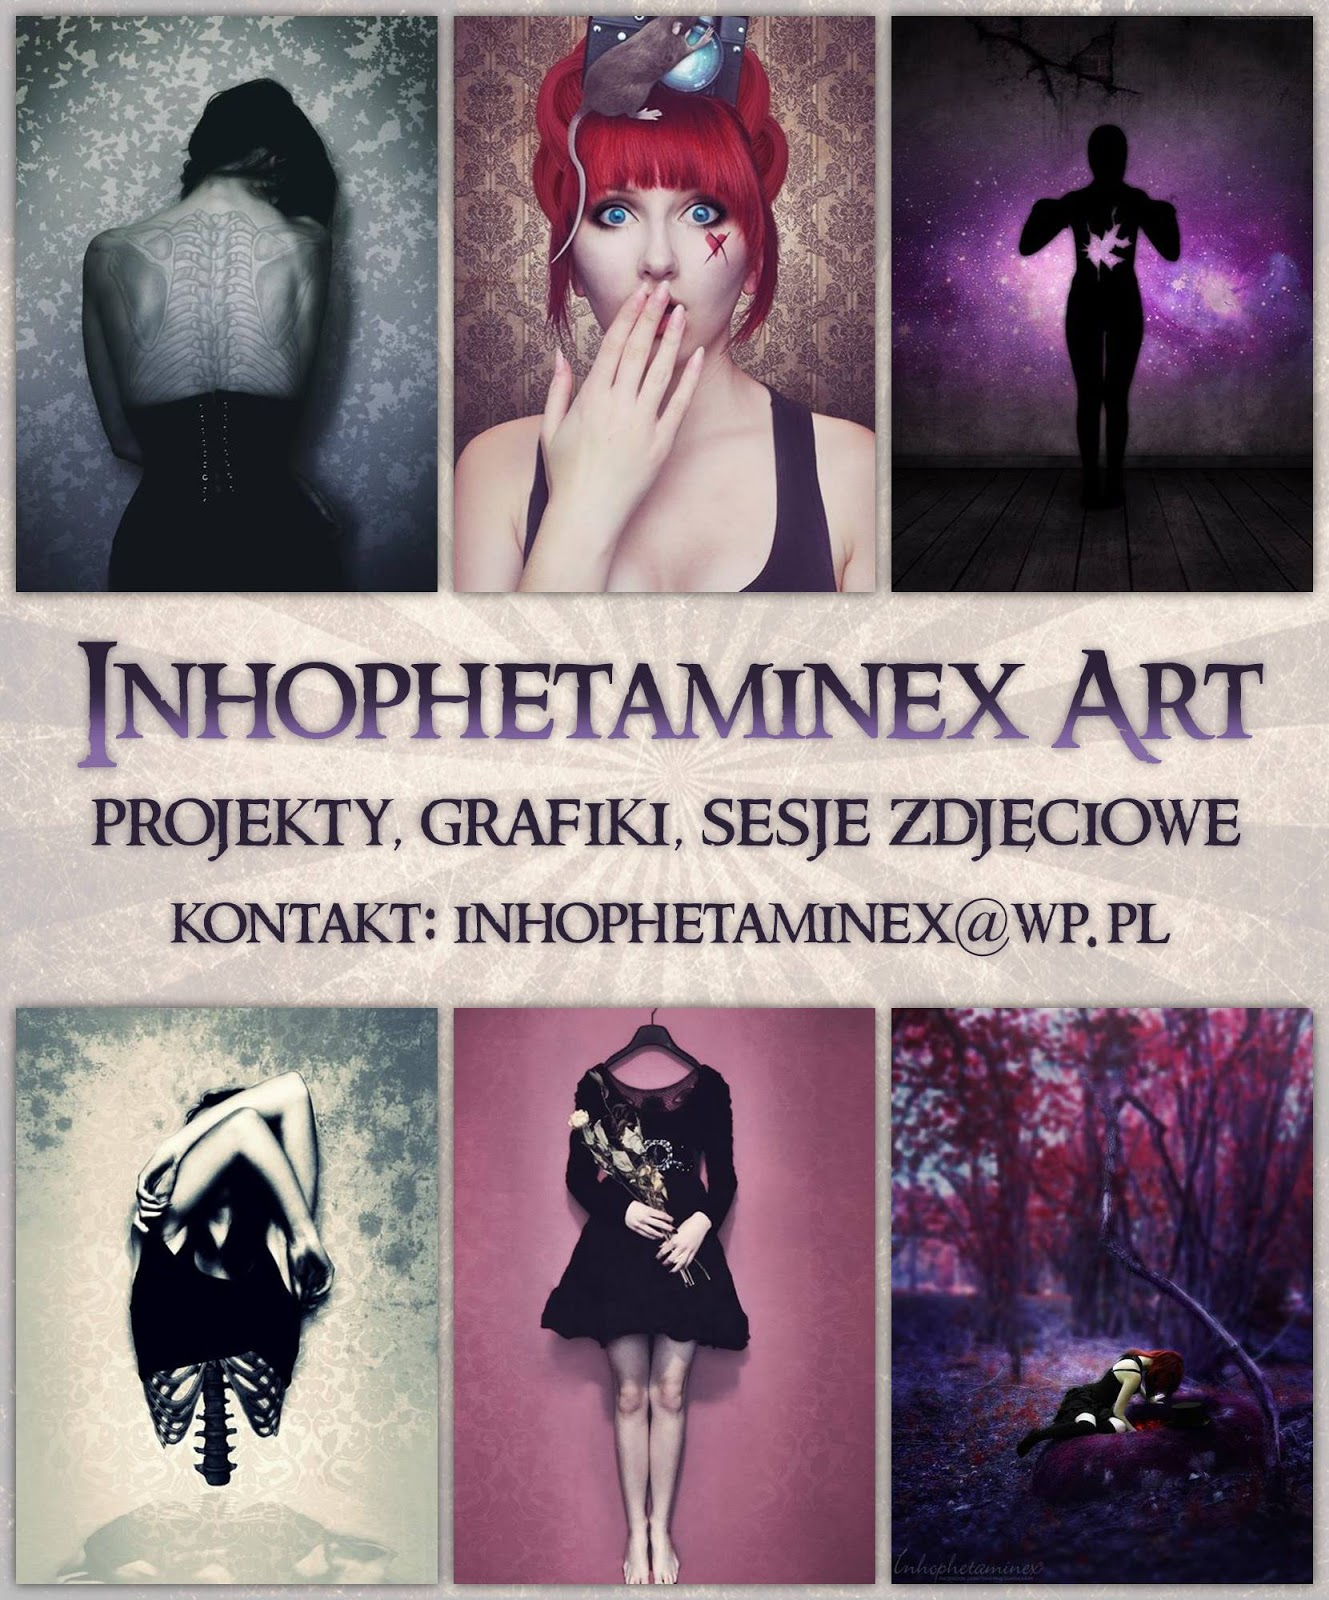 https://www.facebook.com/InhophetaminexArt?fref=ts